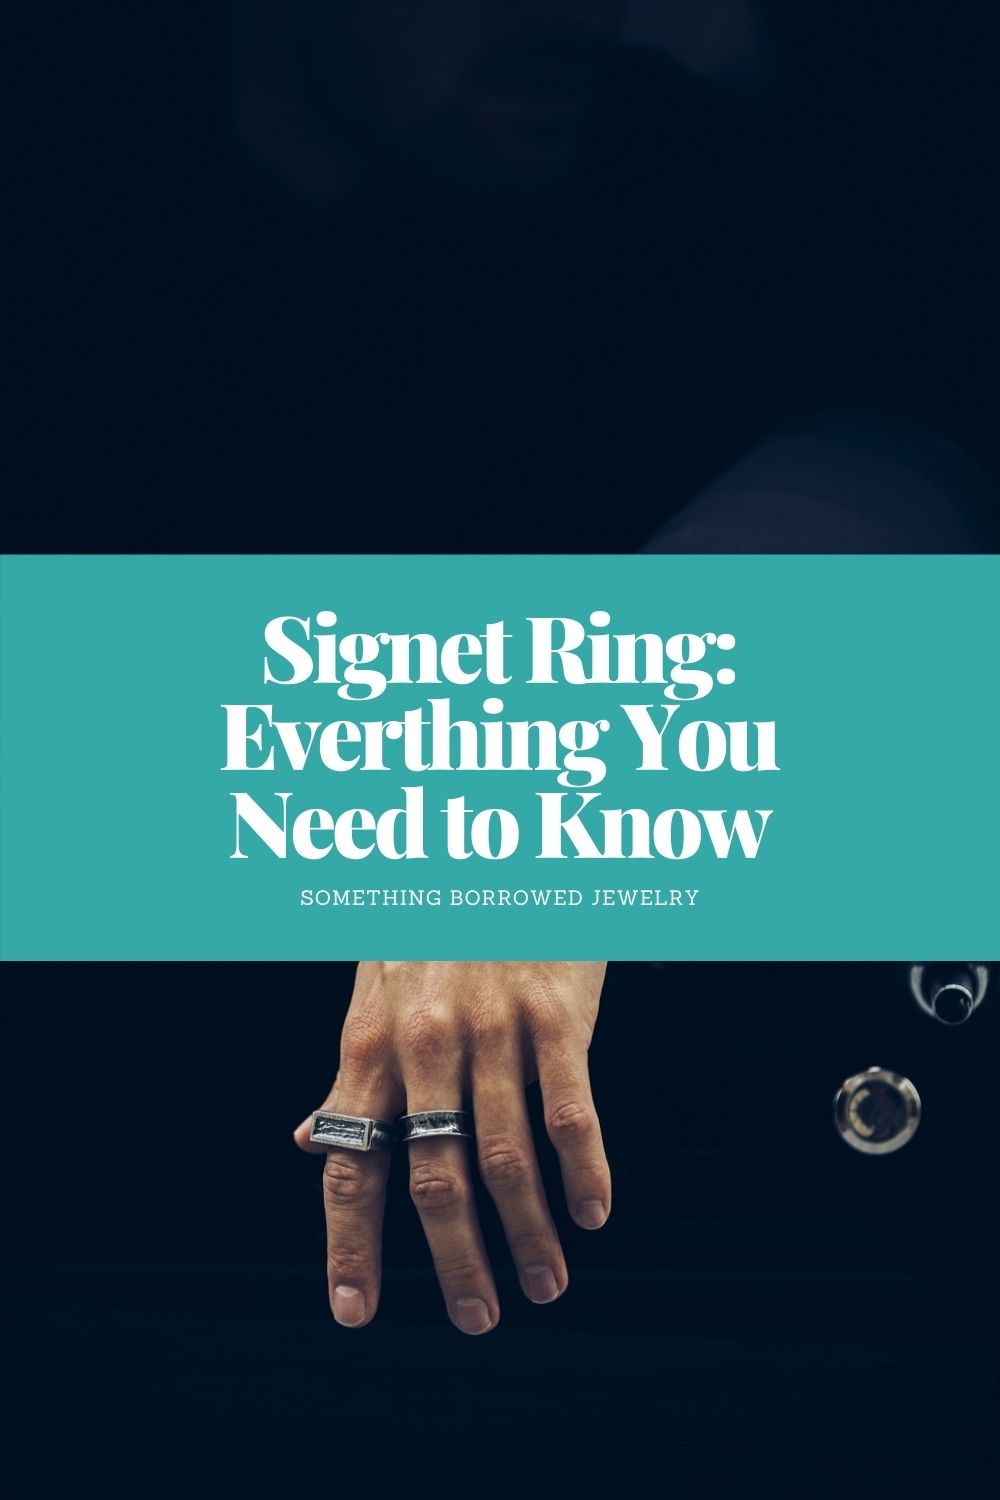 Signet Ring Everthing You Need to Know pin 2